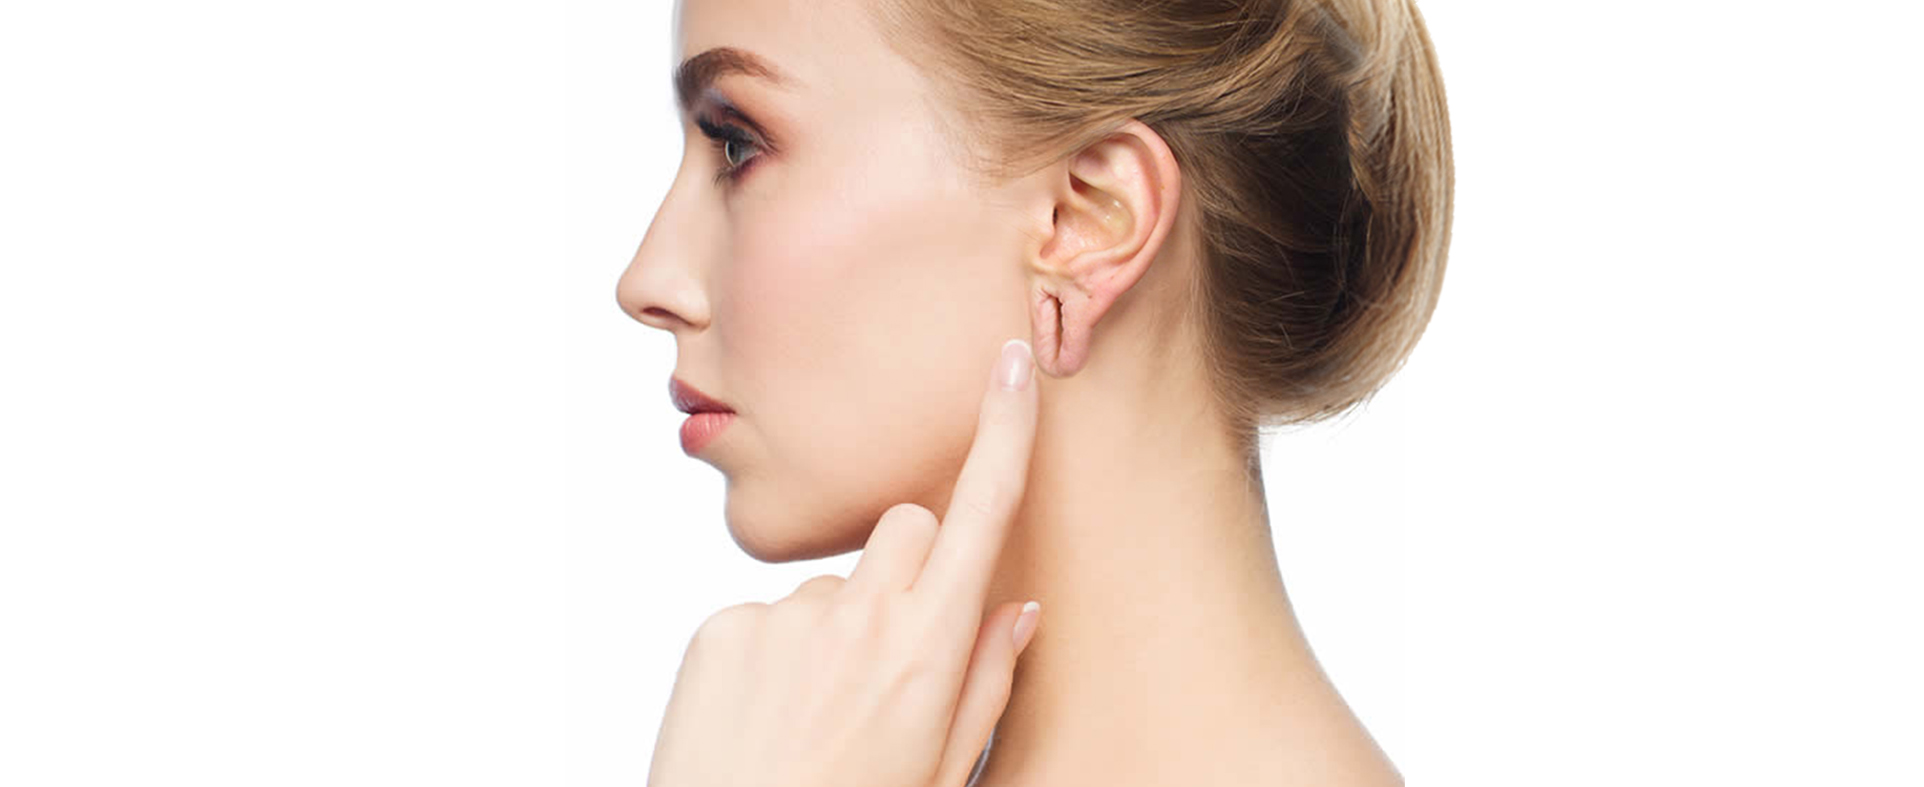 Earlobe Repair | Torn Earlobe | Cosmetic Surgery Clinic